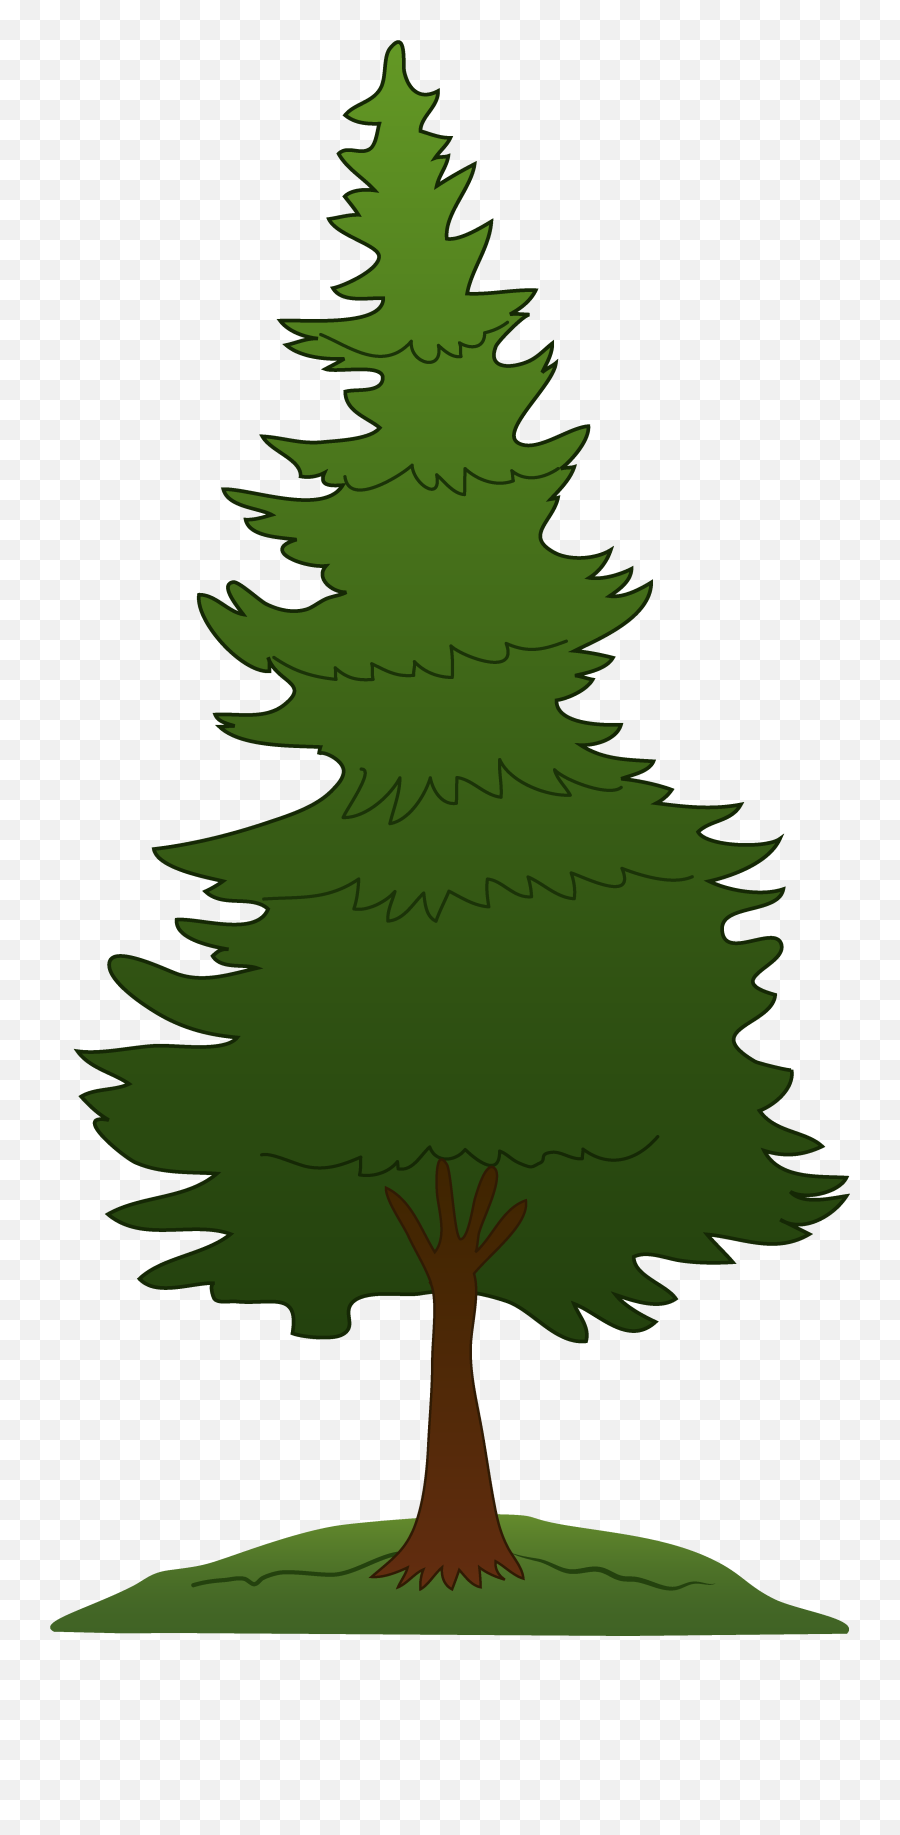 Library Of Forest Trees Clip Art Transparent Background Pine Tree Clipart Png Forest Tree Png Free Transparent Png Images Pngaaa Com